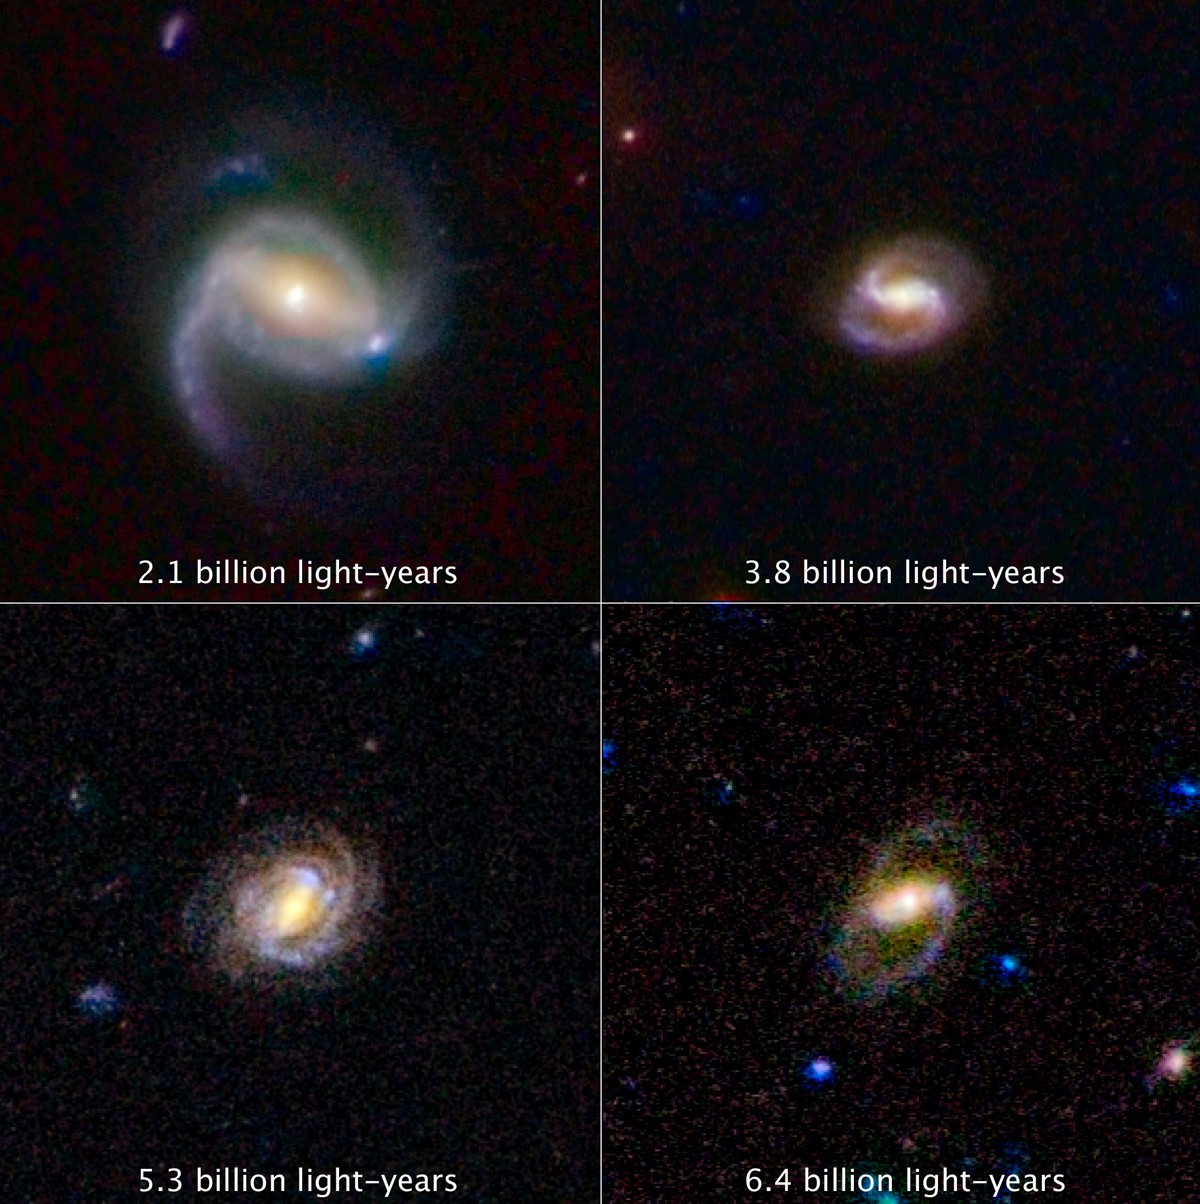 Barred spiral galaxies are latecomers | Astronomy.com